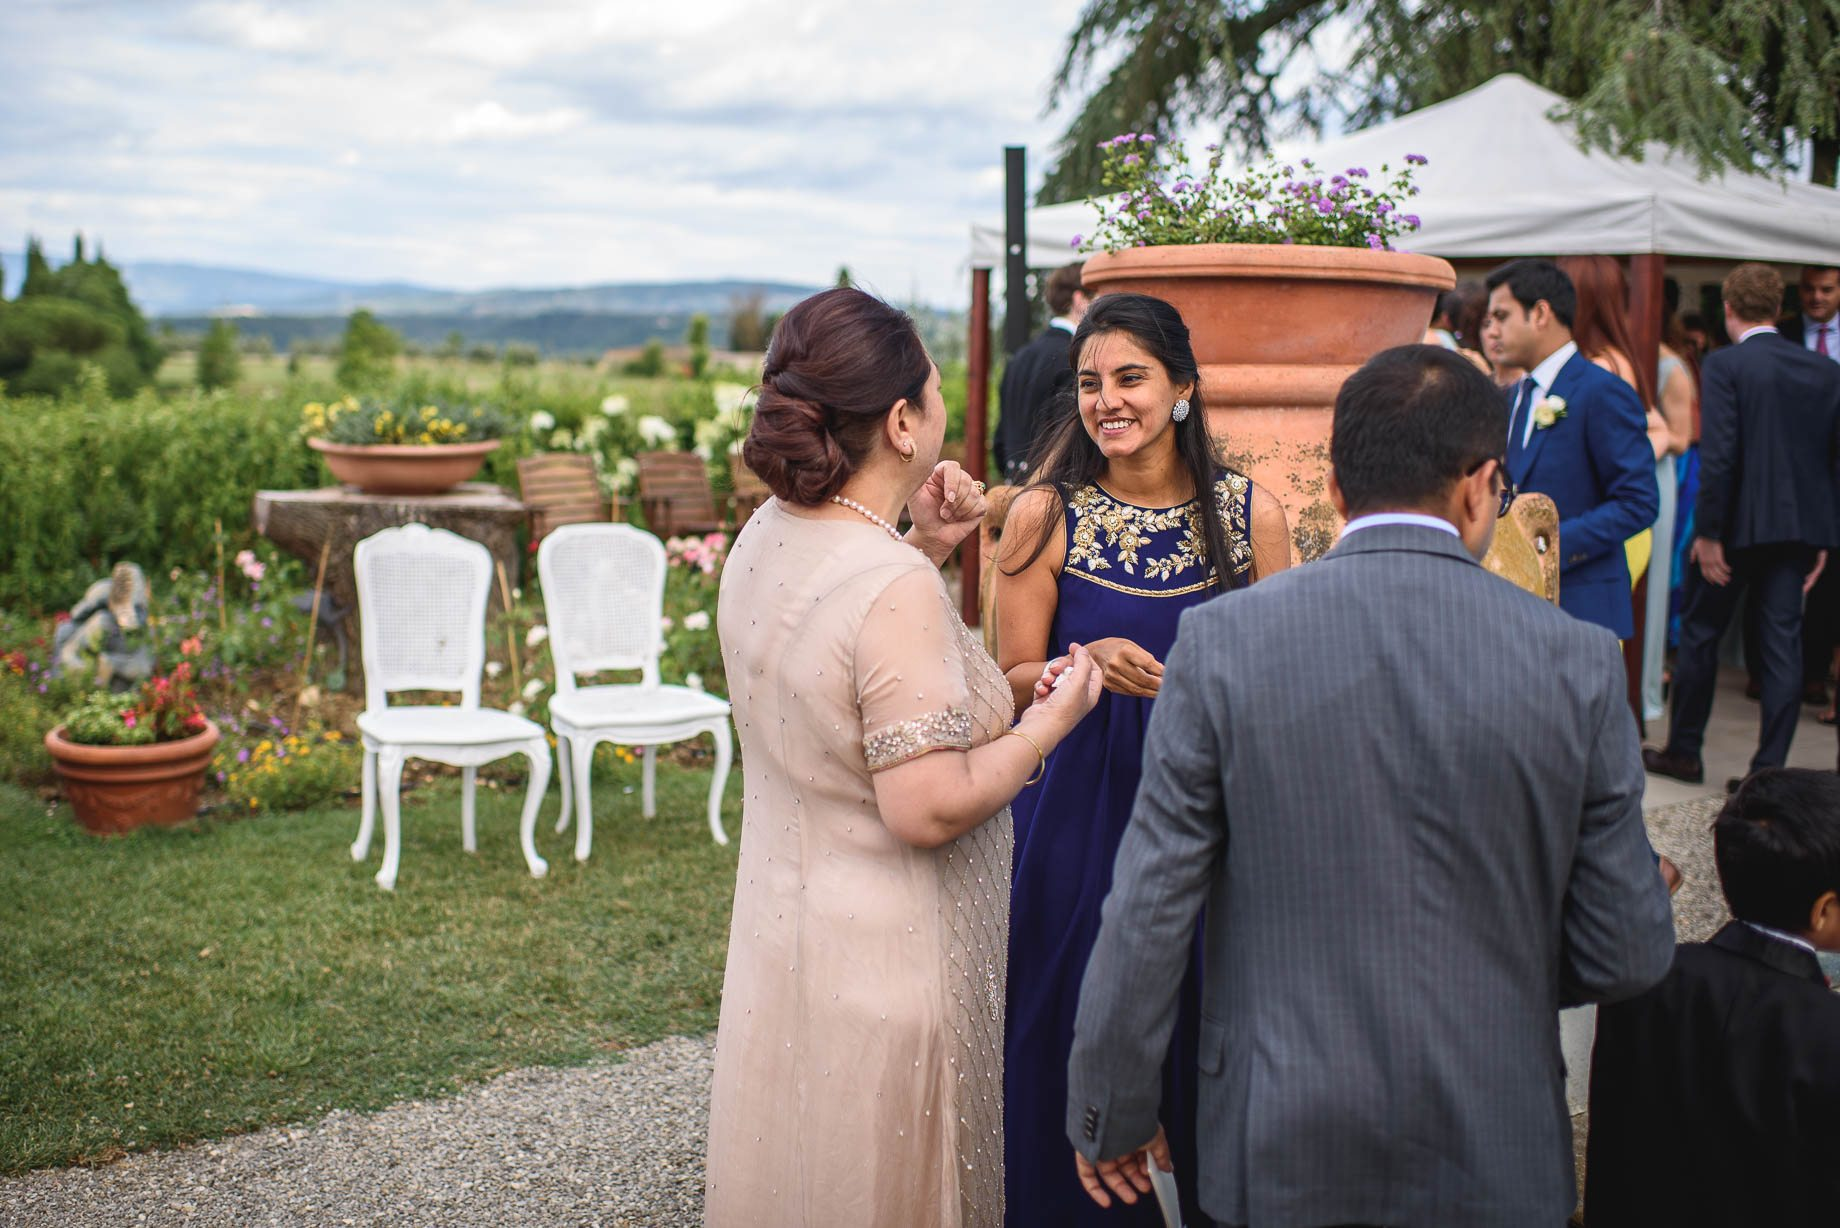 Tuscany wedding photography - Roisin and Moubin - Guy Collier Photography (133 of 251)